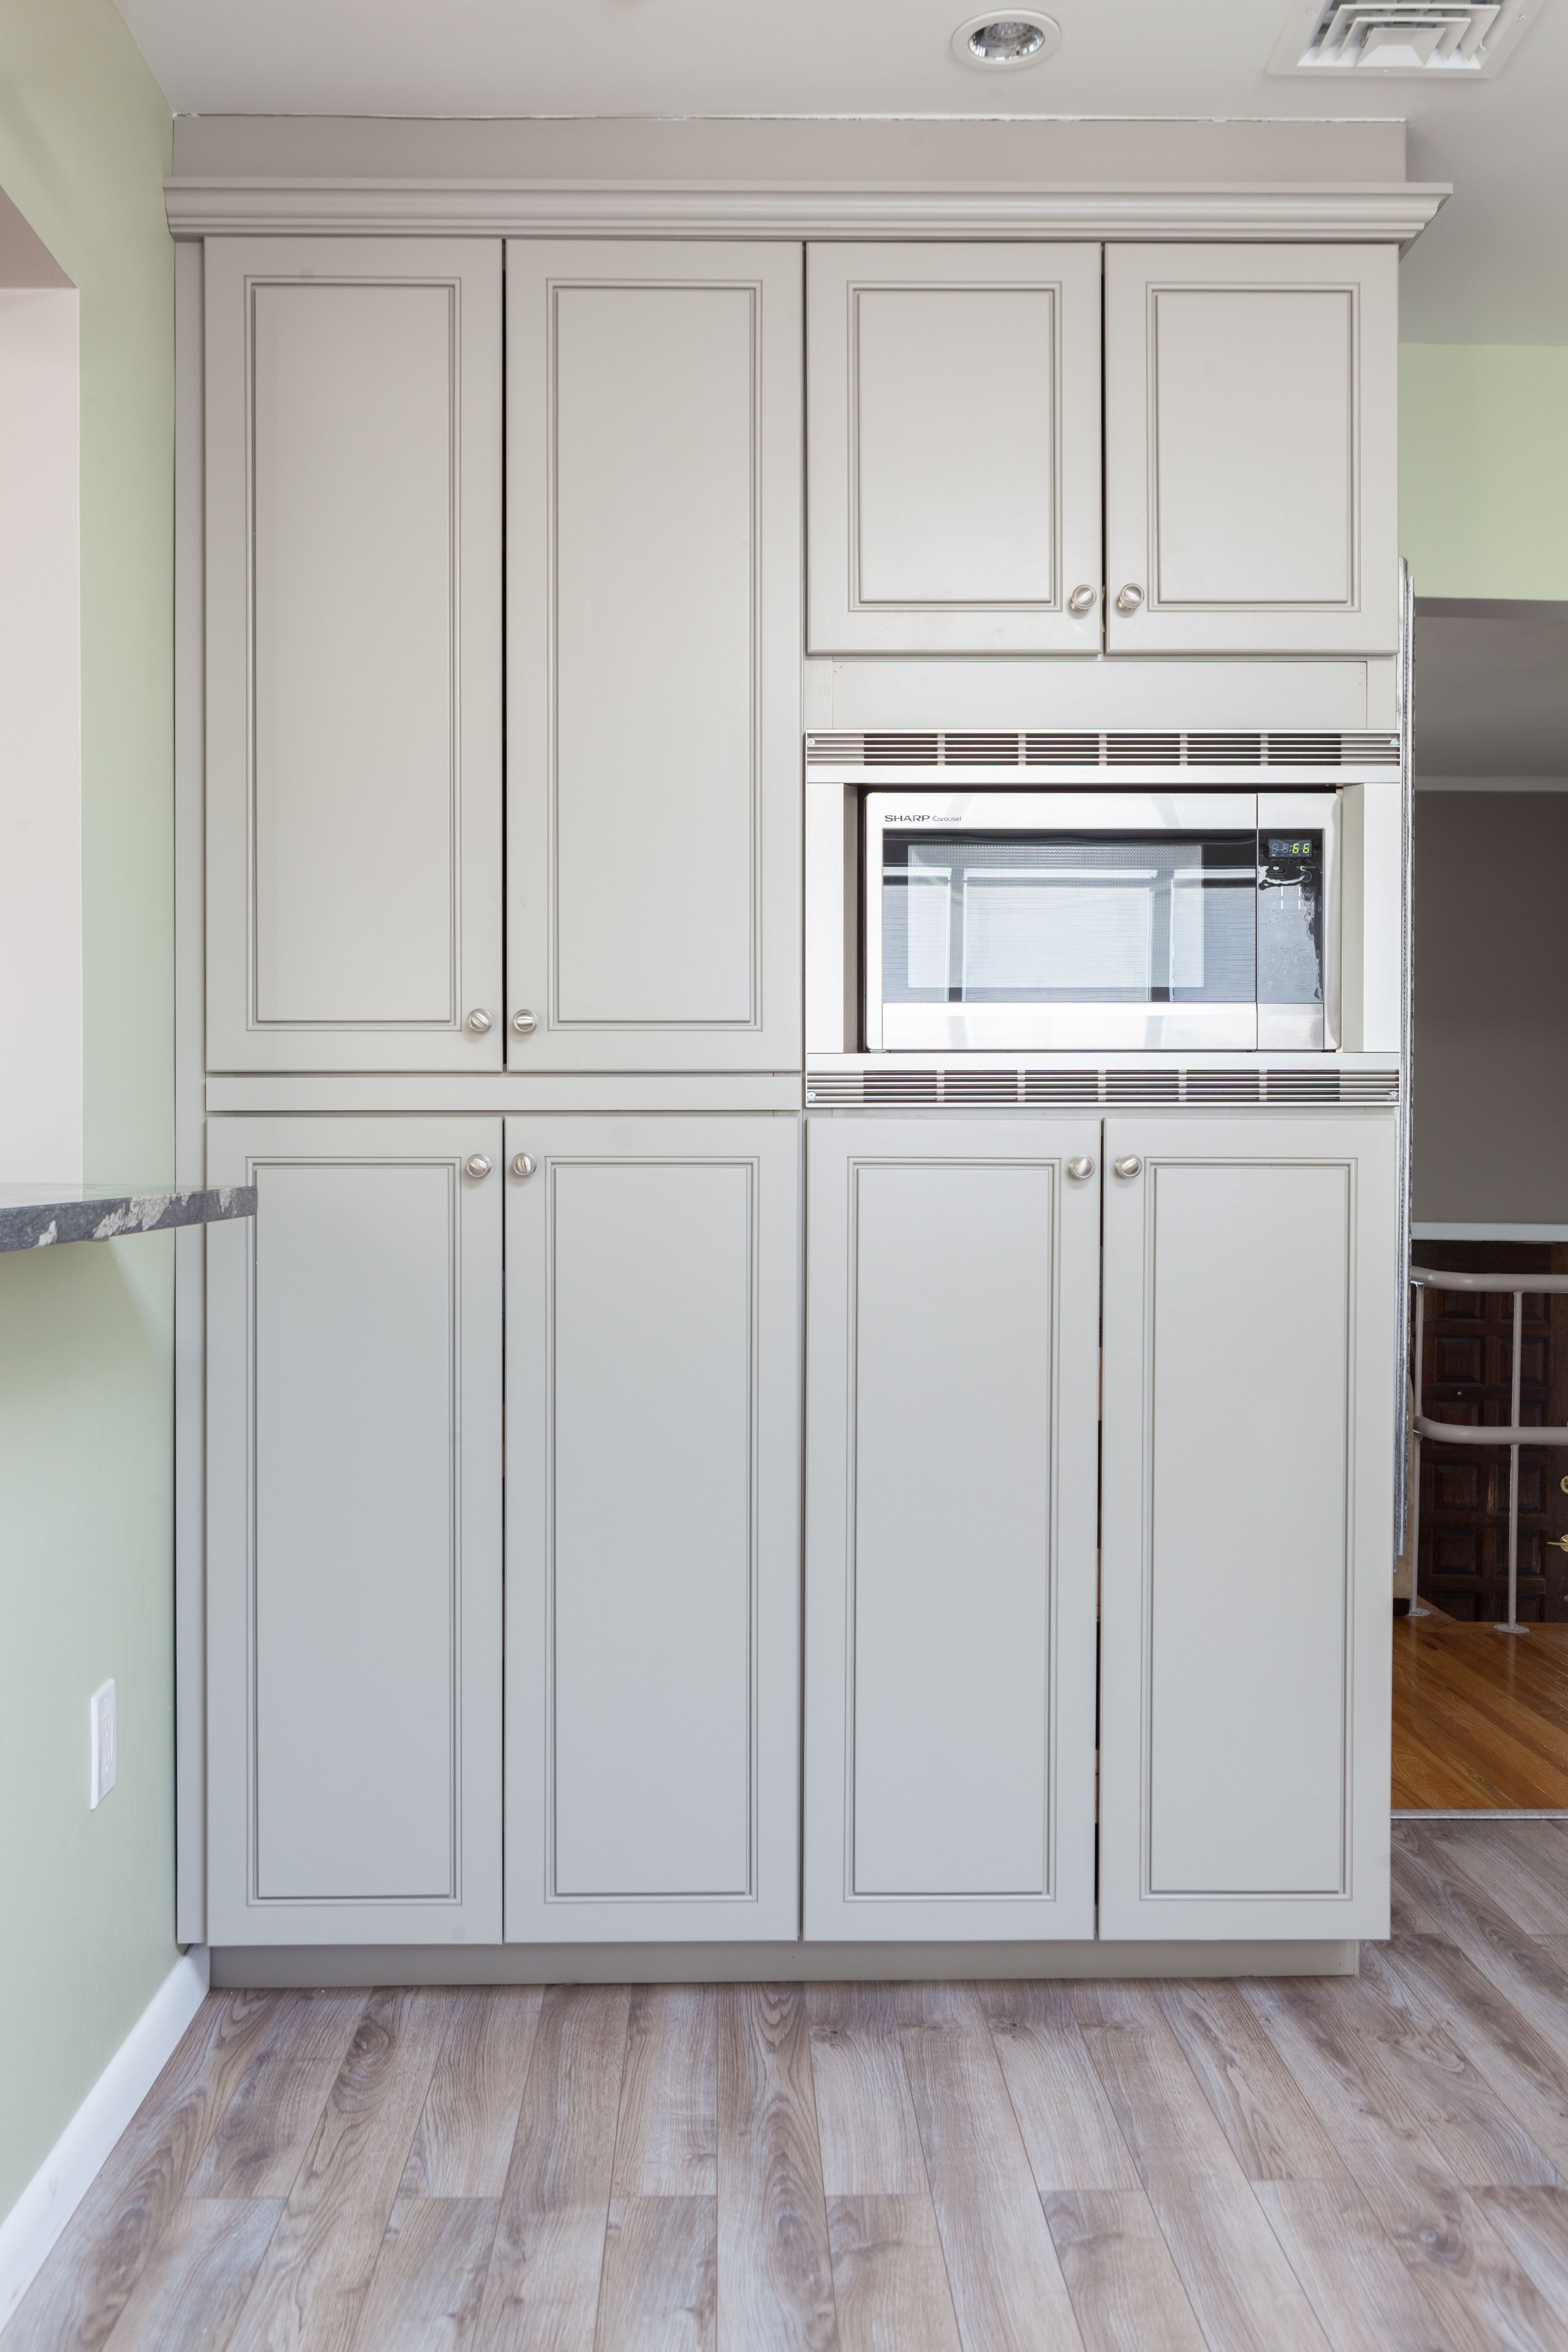 j k greige maple cabinets style k3 kitchen design on j kitchen id=74882